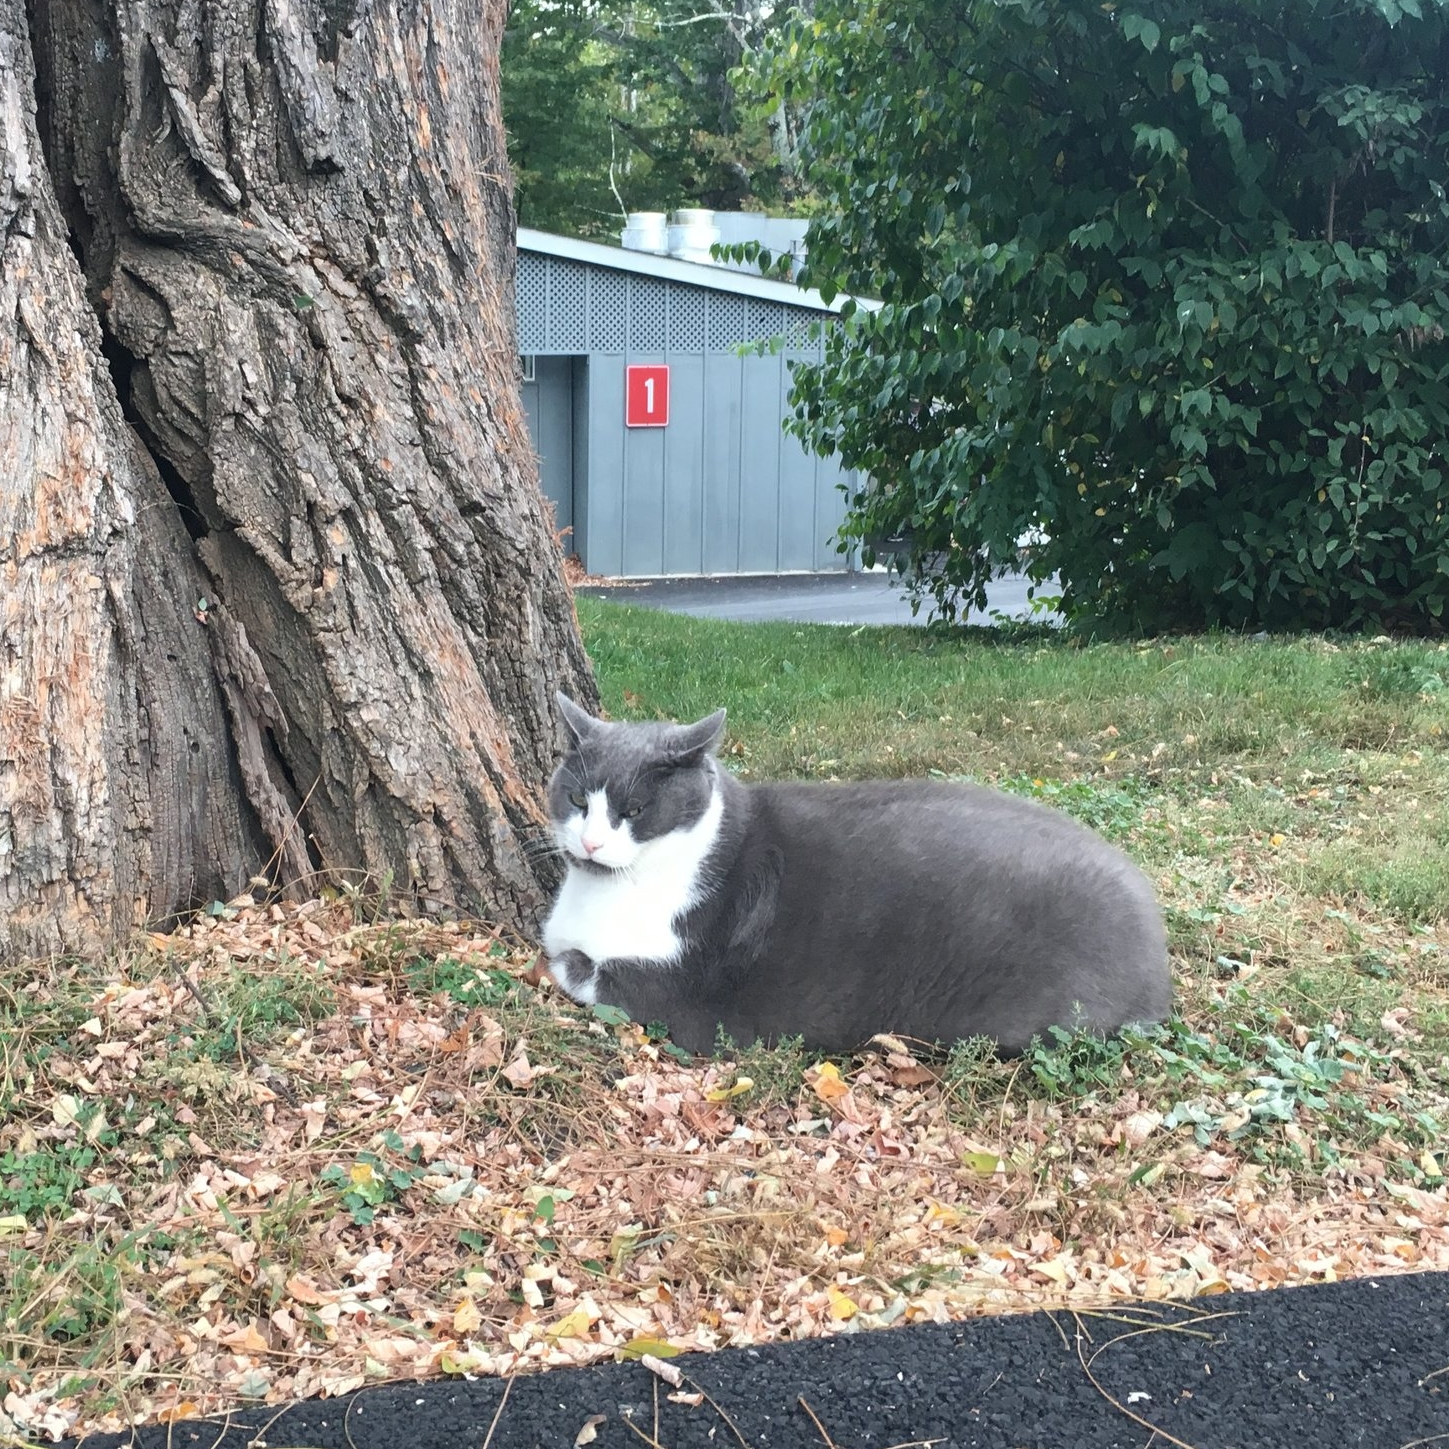 This is Bourbon, the 28-pound cat that has nothing to do with this post.